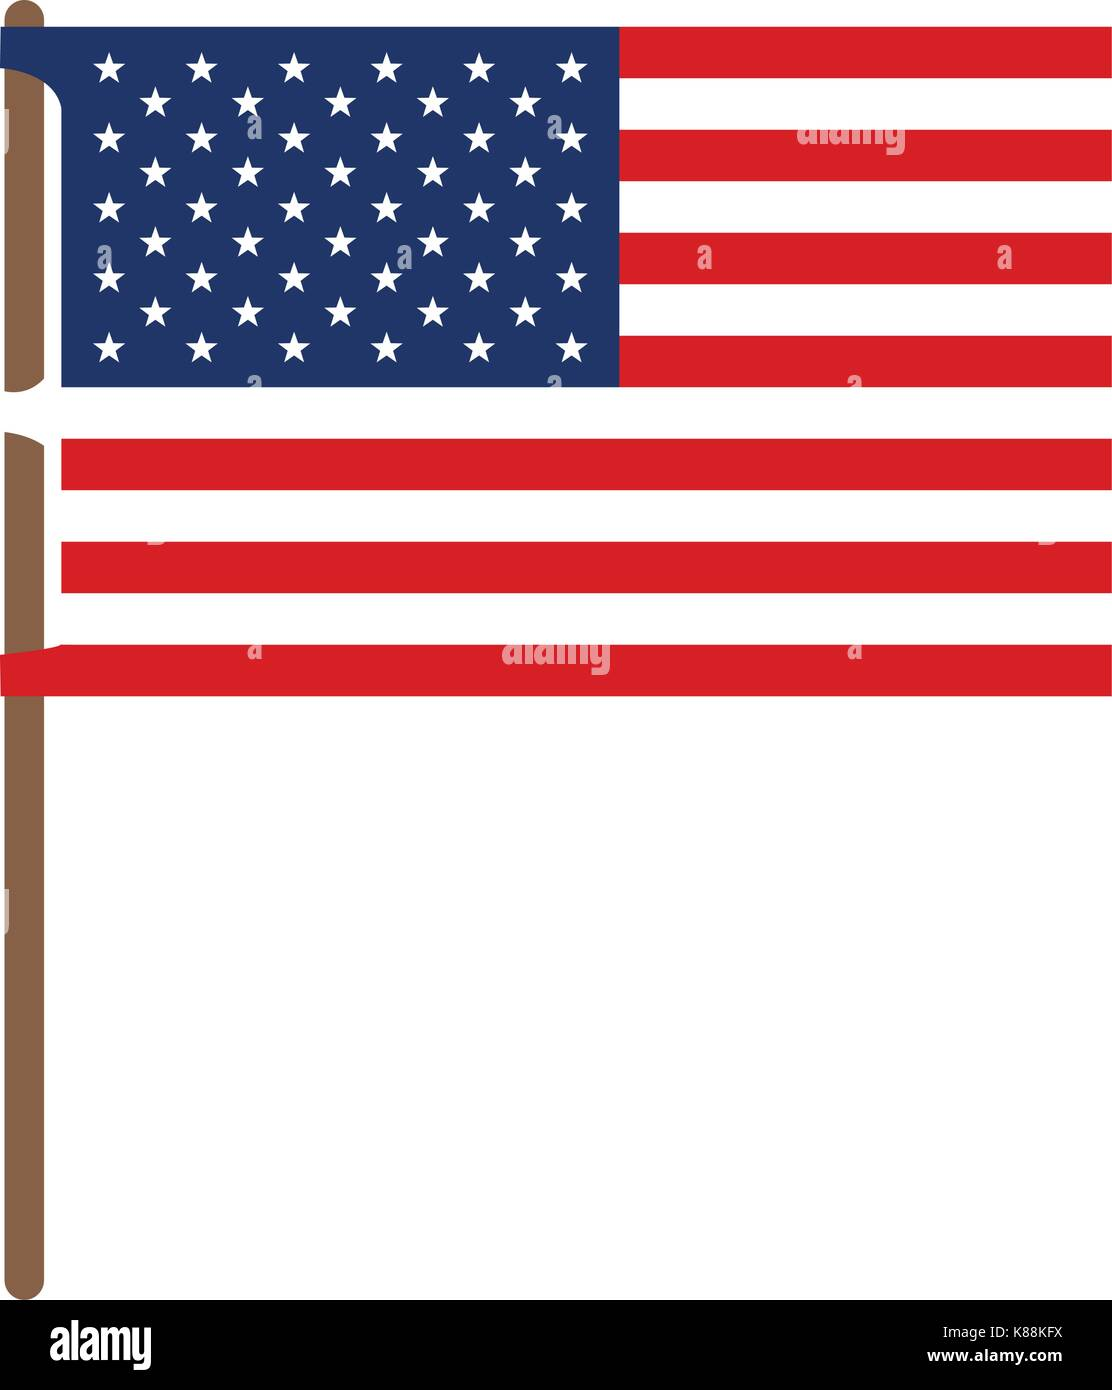 flag united states of america in flagpole and colorful silhouette without contour - Stock Image